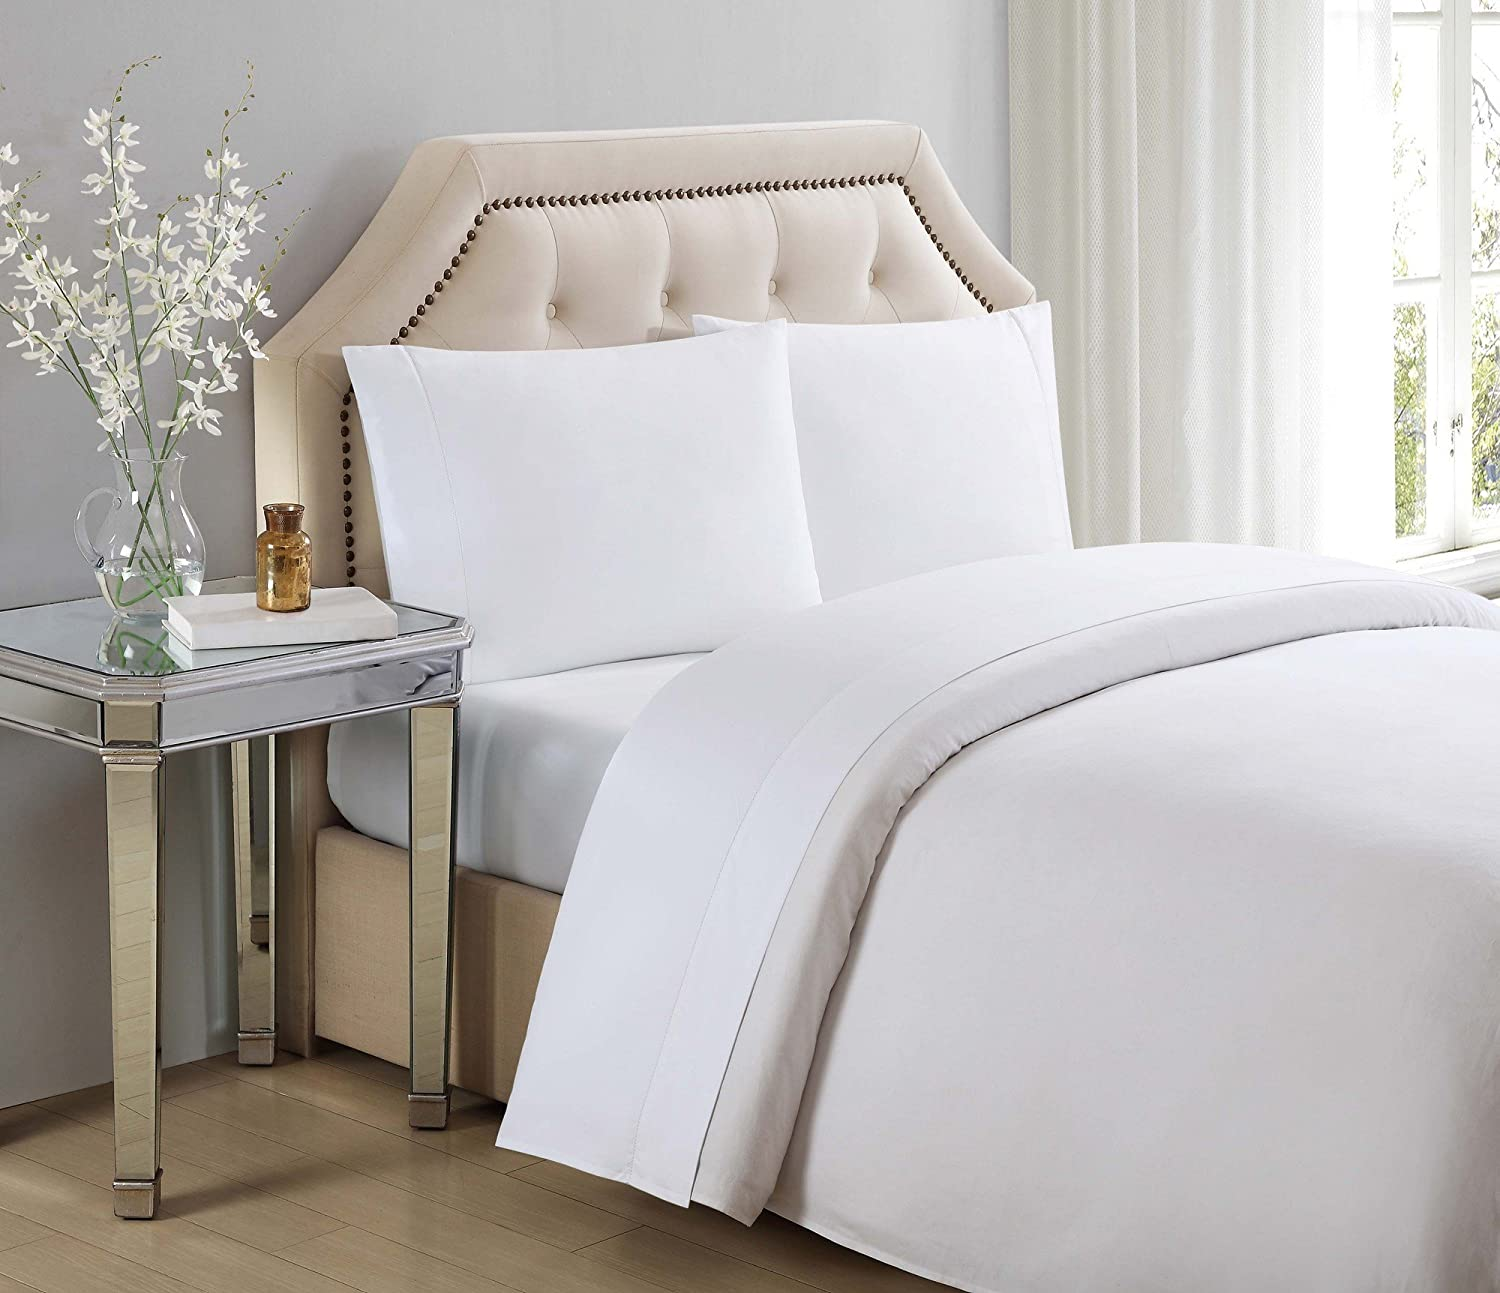 Charisma 610 New item San Diego Mall Thread Count Bright Sheets Queen White